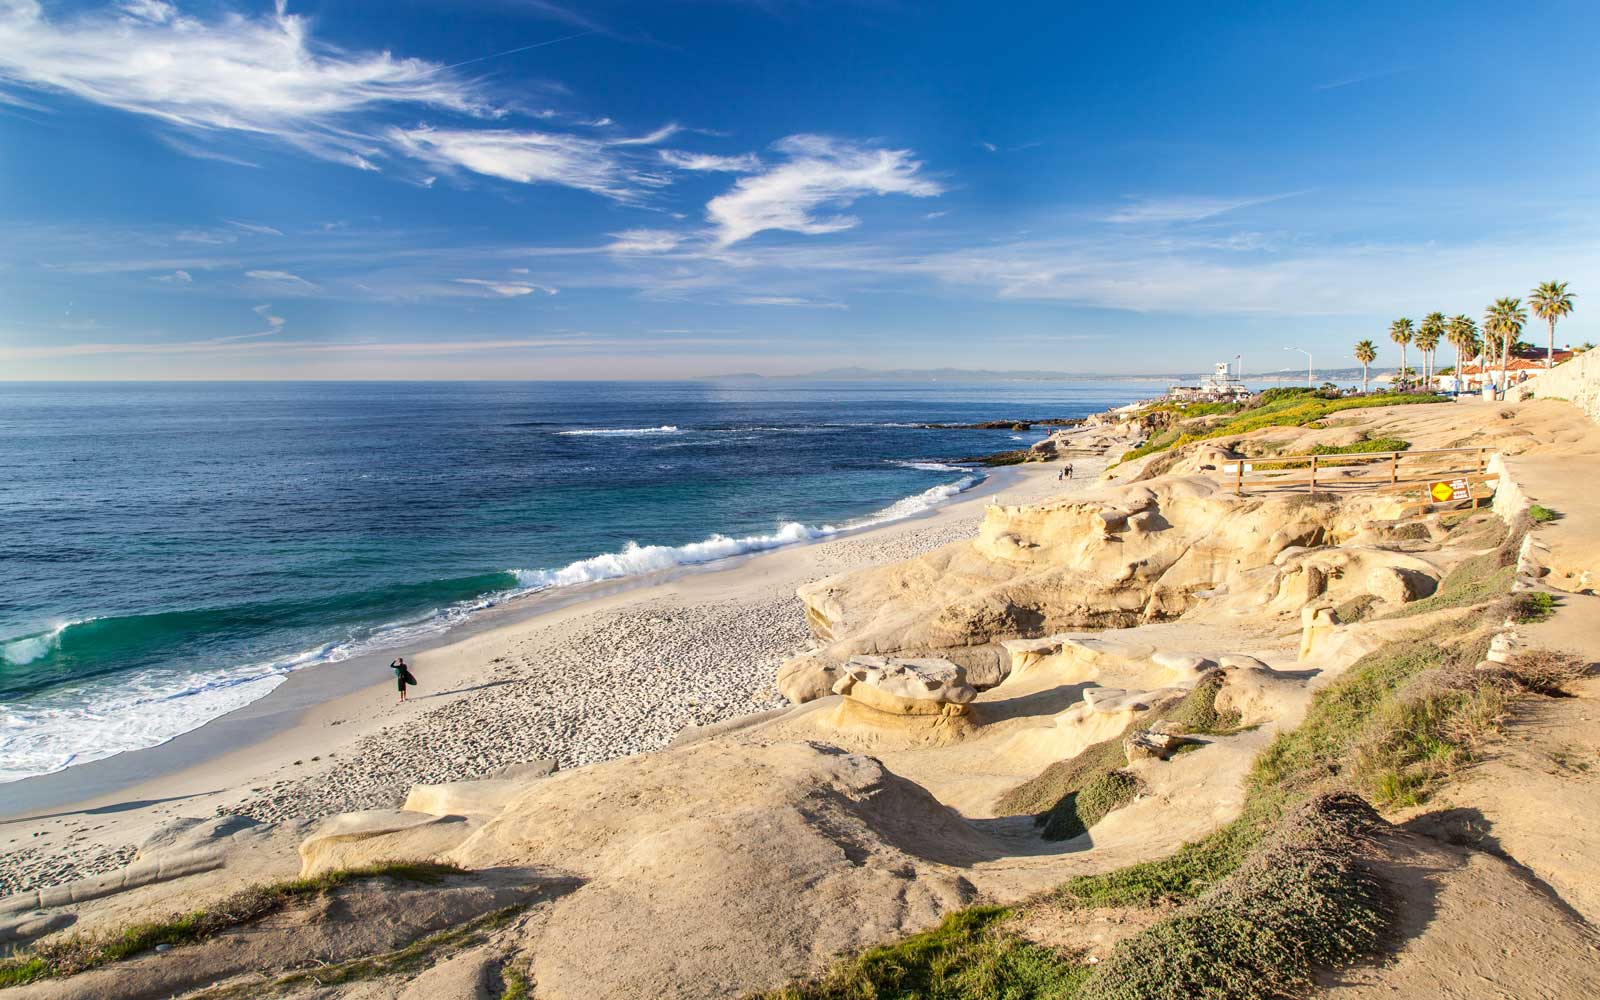 California Declares Surfing the Official State Sport